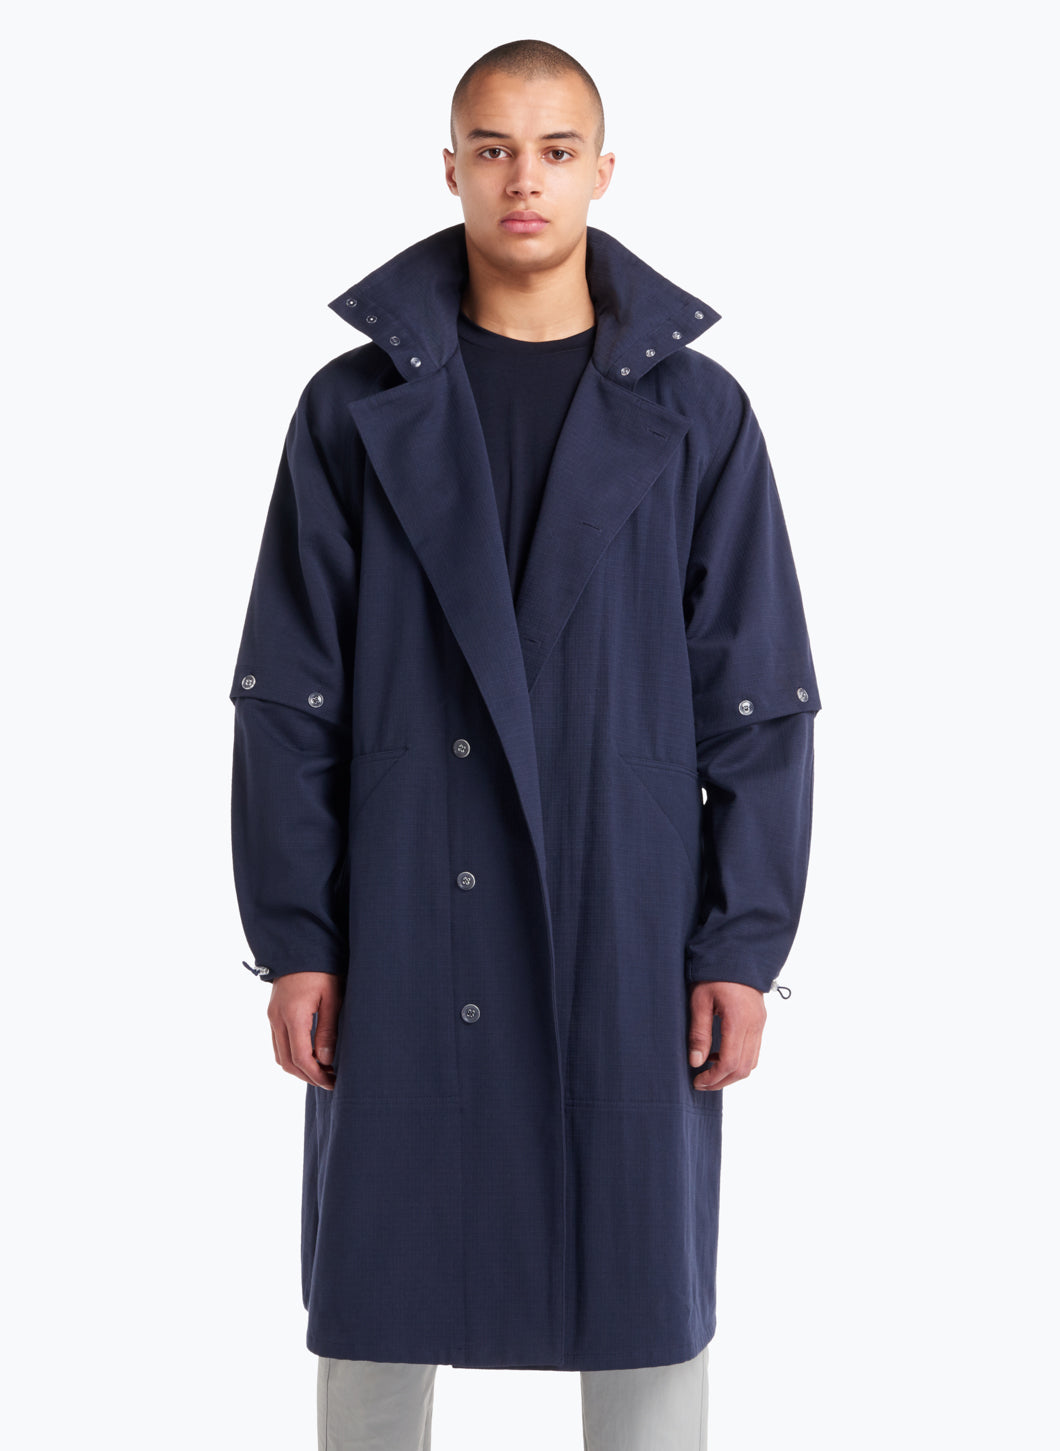 Hooded Overcoat in Navy Blue Cotton Ripstop